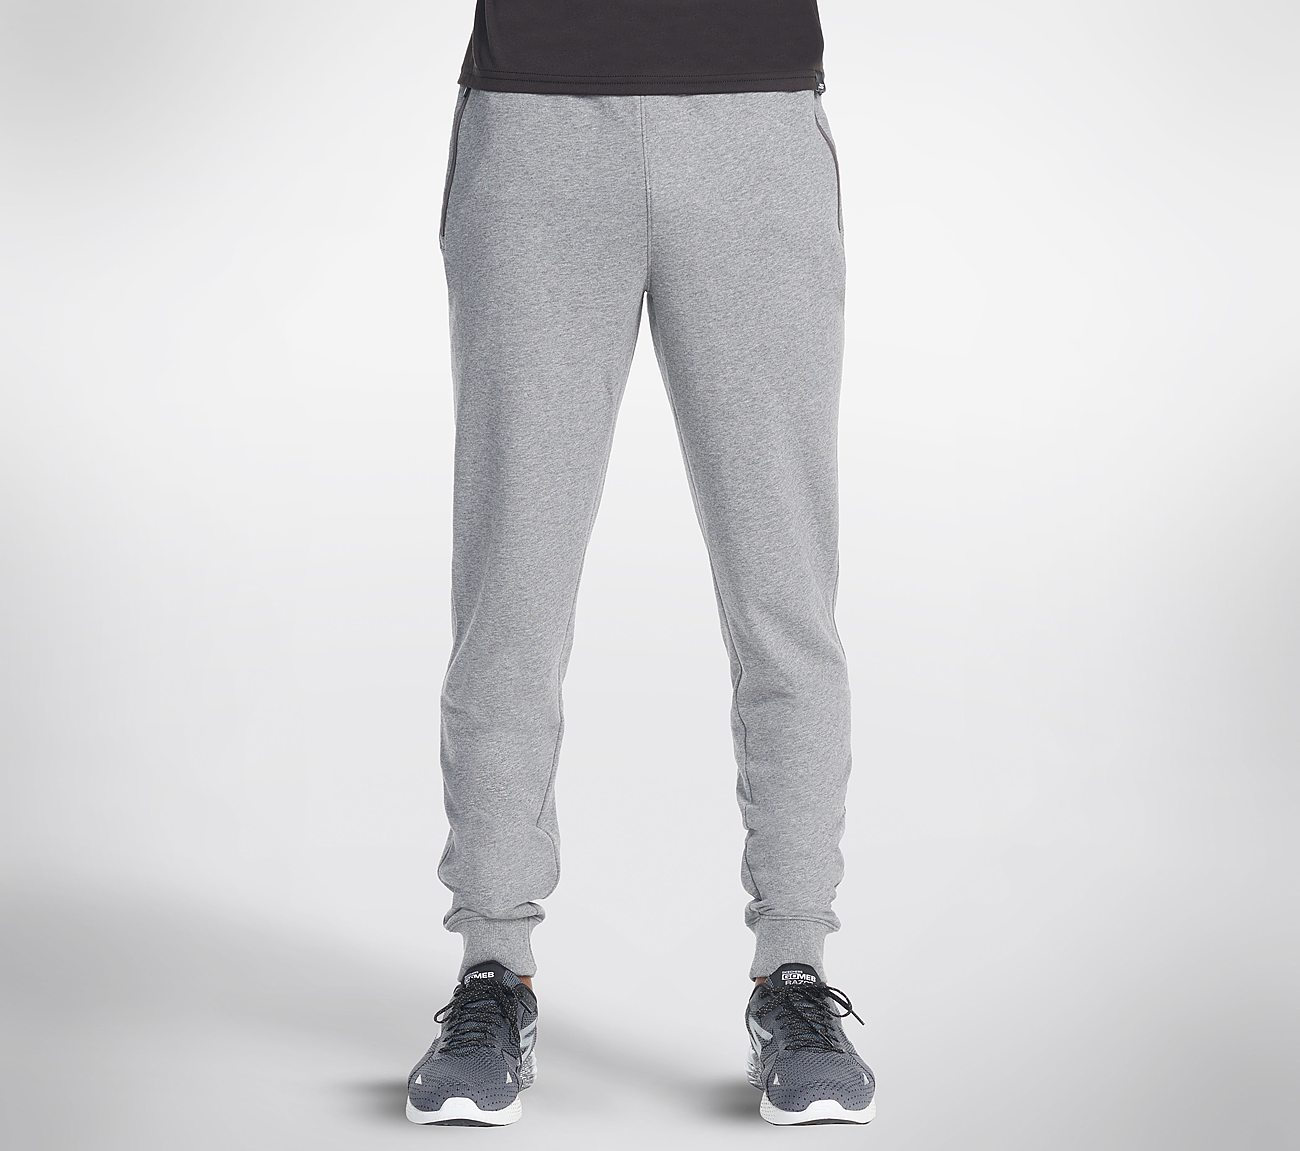 Buy Skechers Podium Jogger Online for Men | Joggers for Men